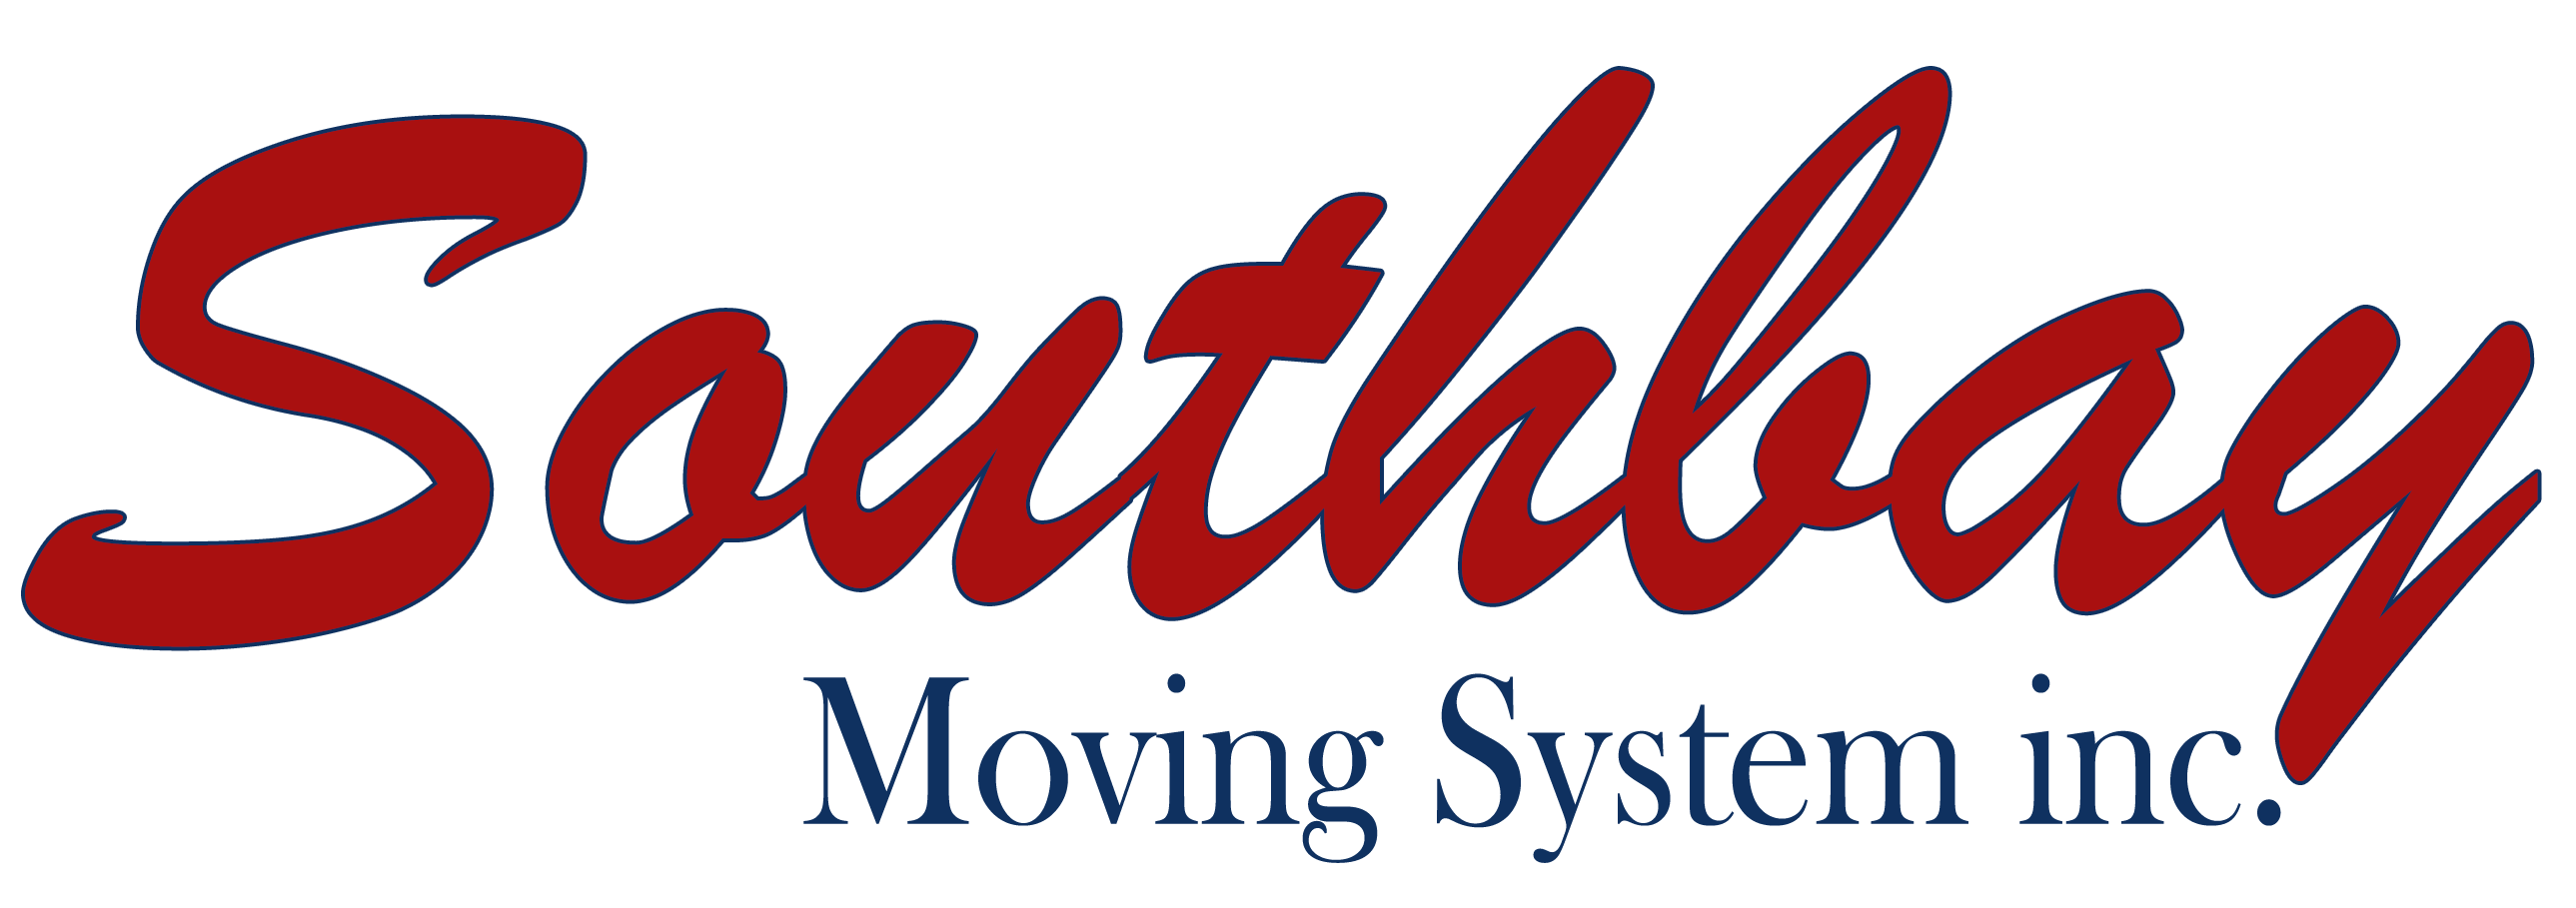 Southbay Moving Systems, Inc. Logo